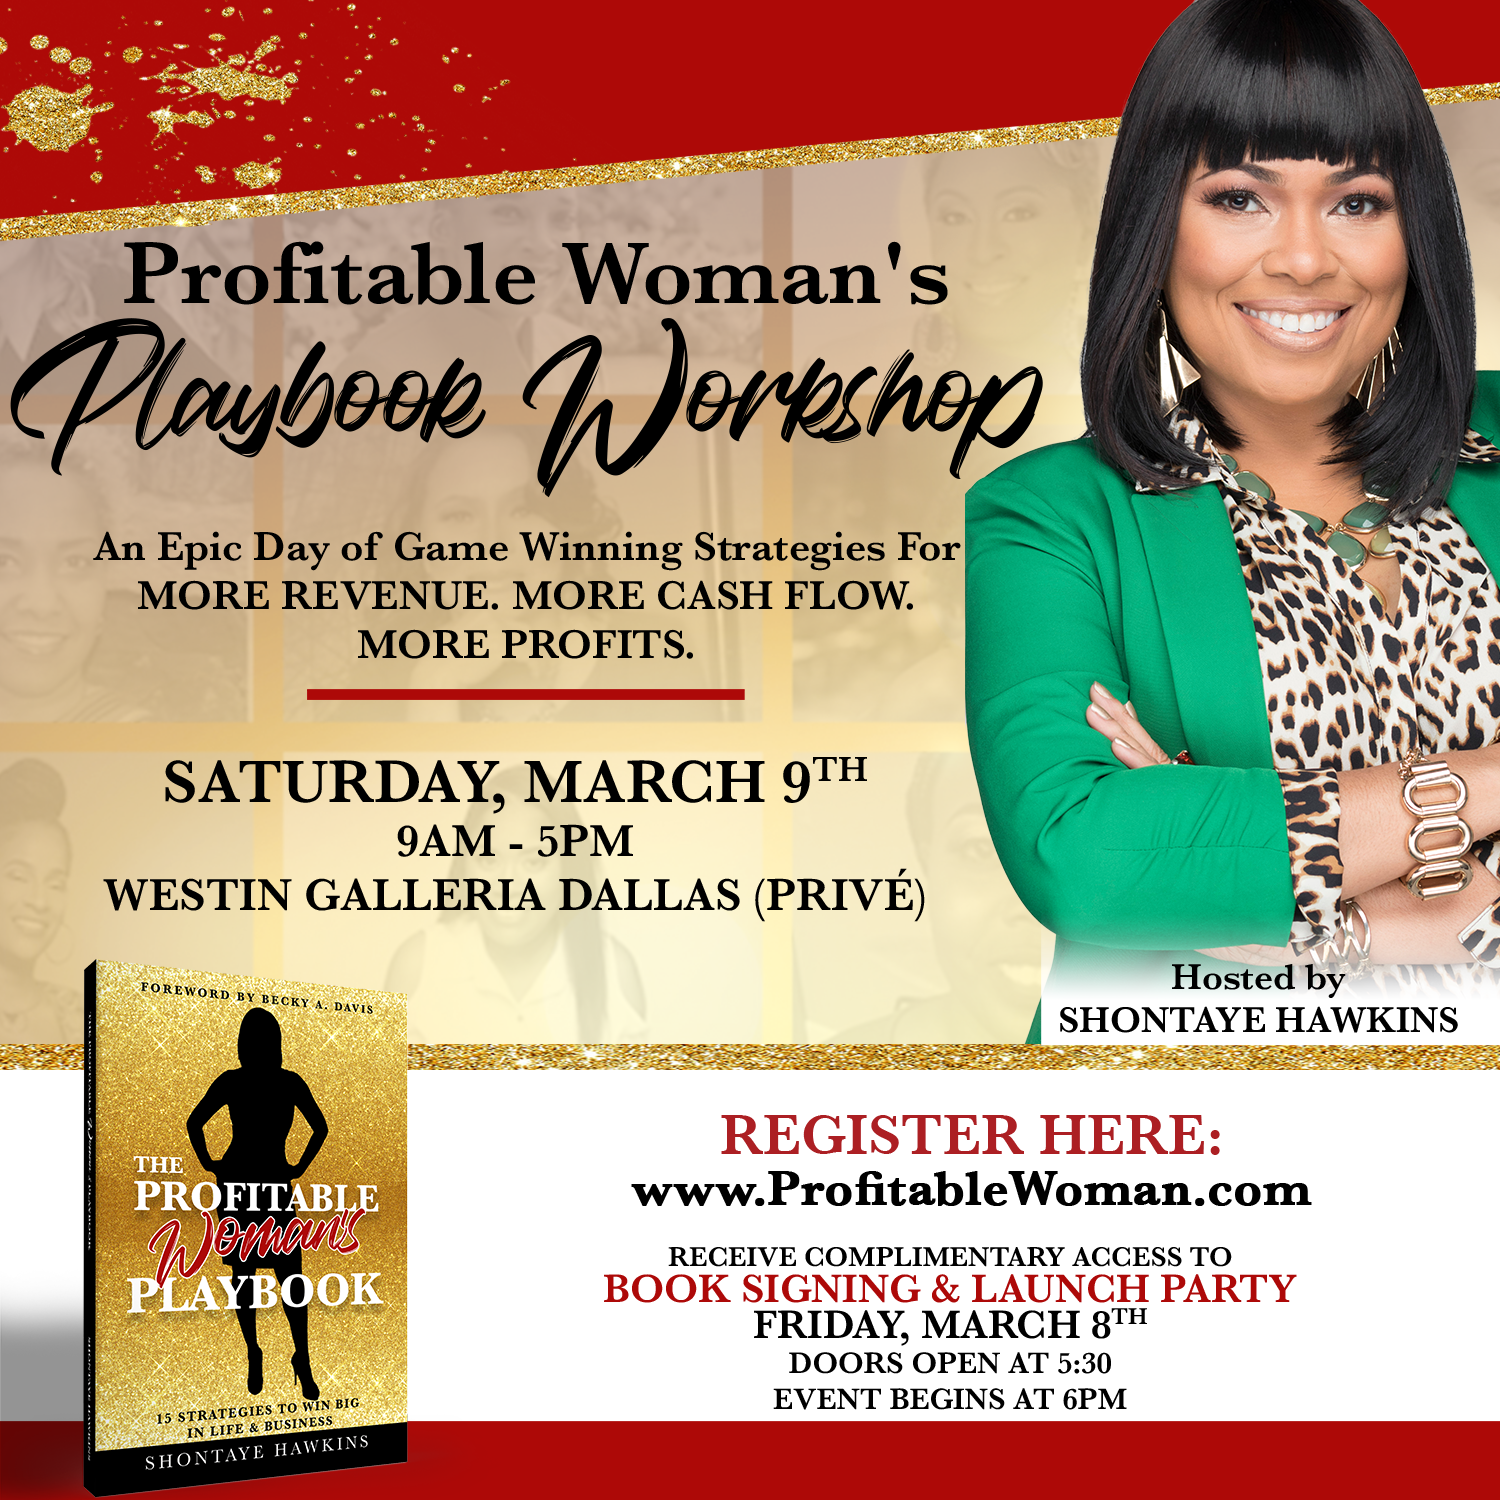 The Profitable Woman's Playbook Workshop